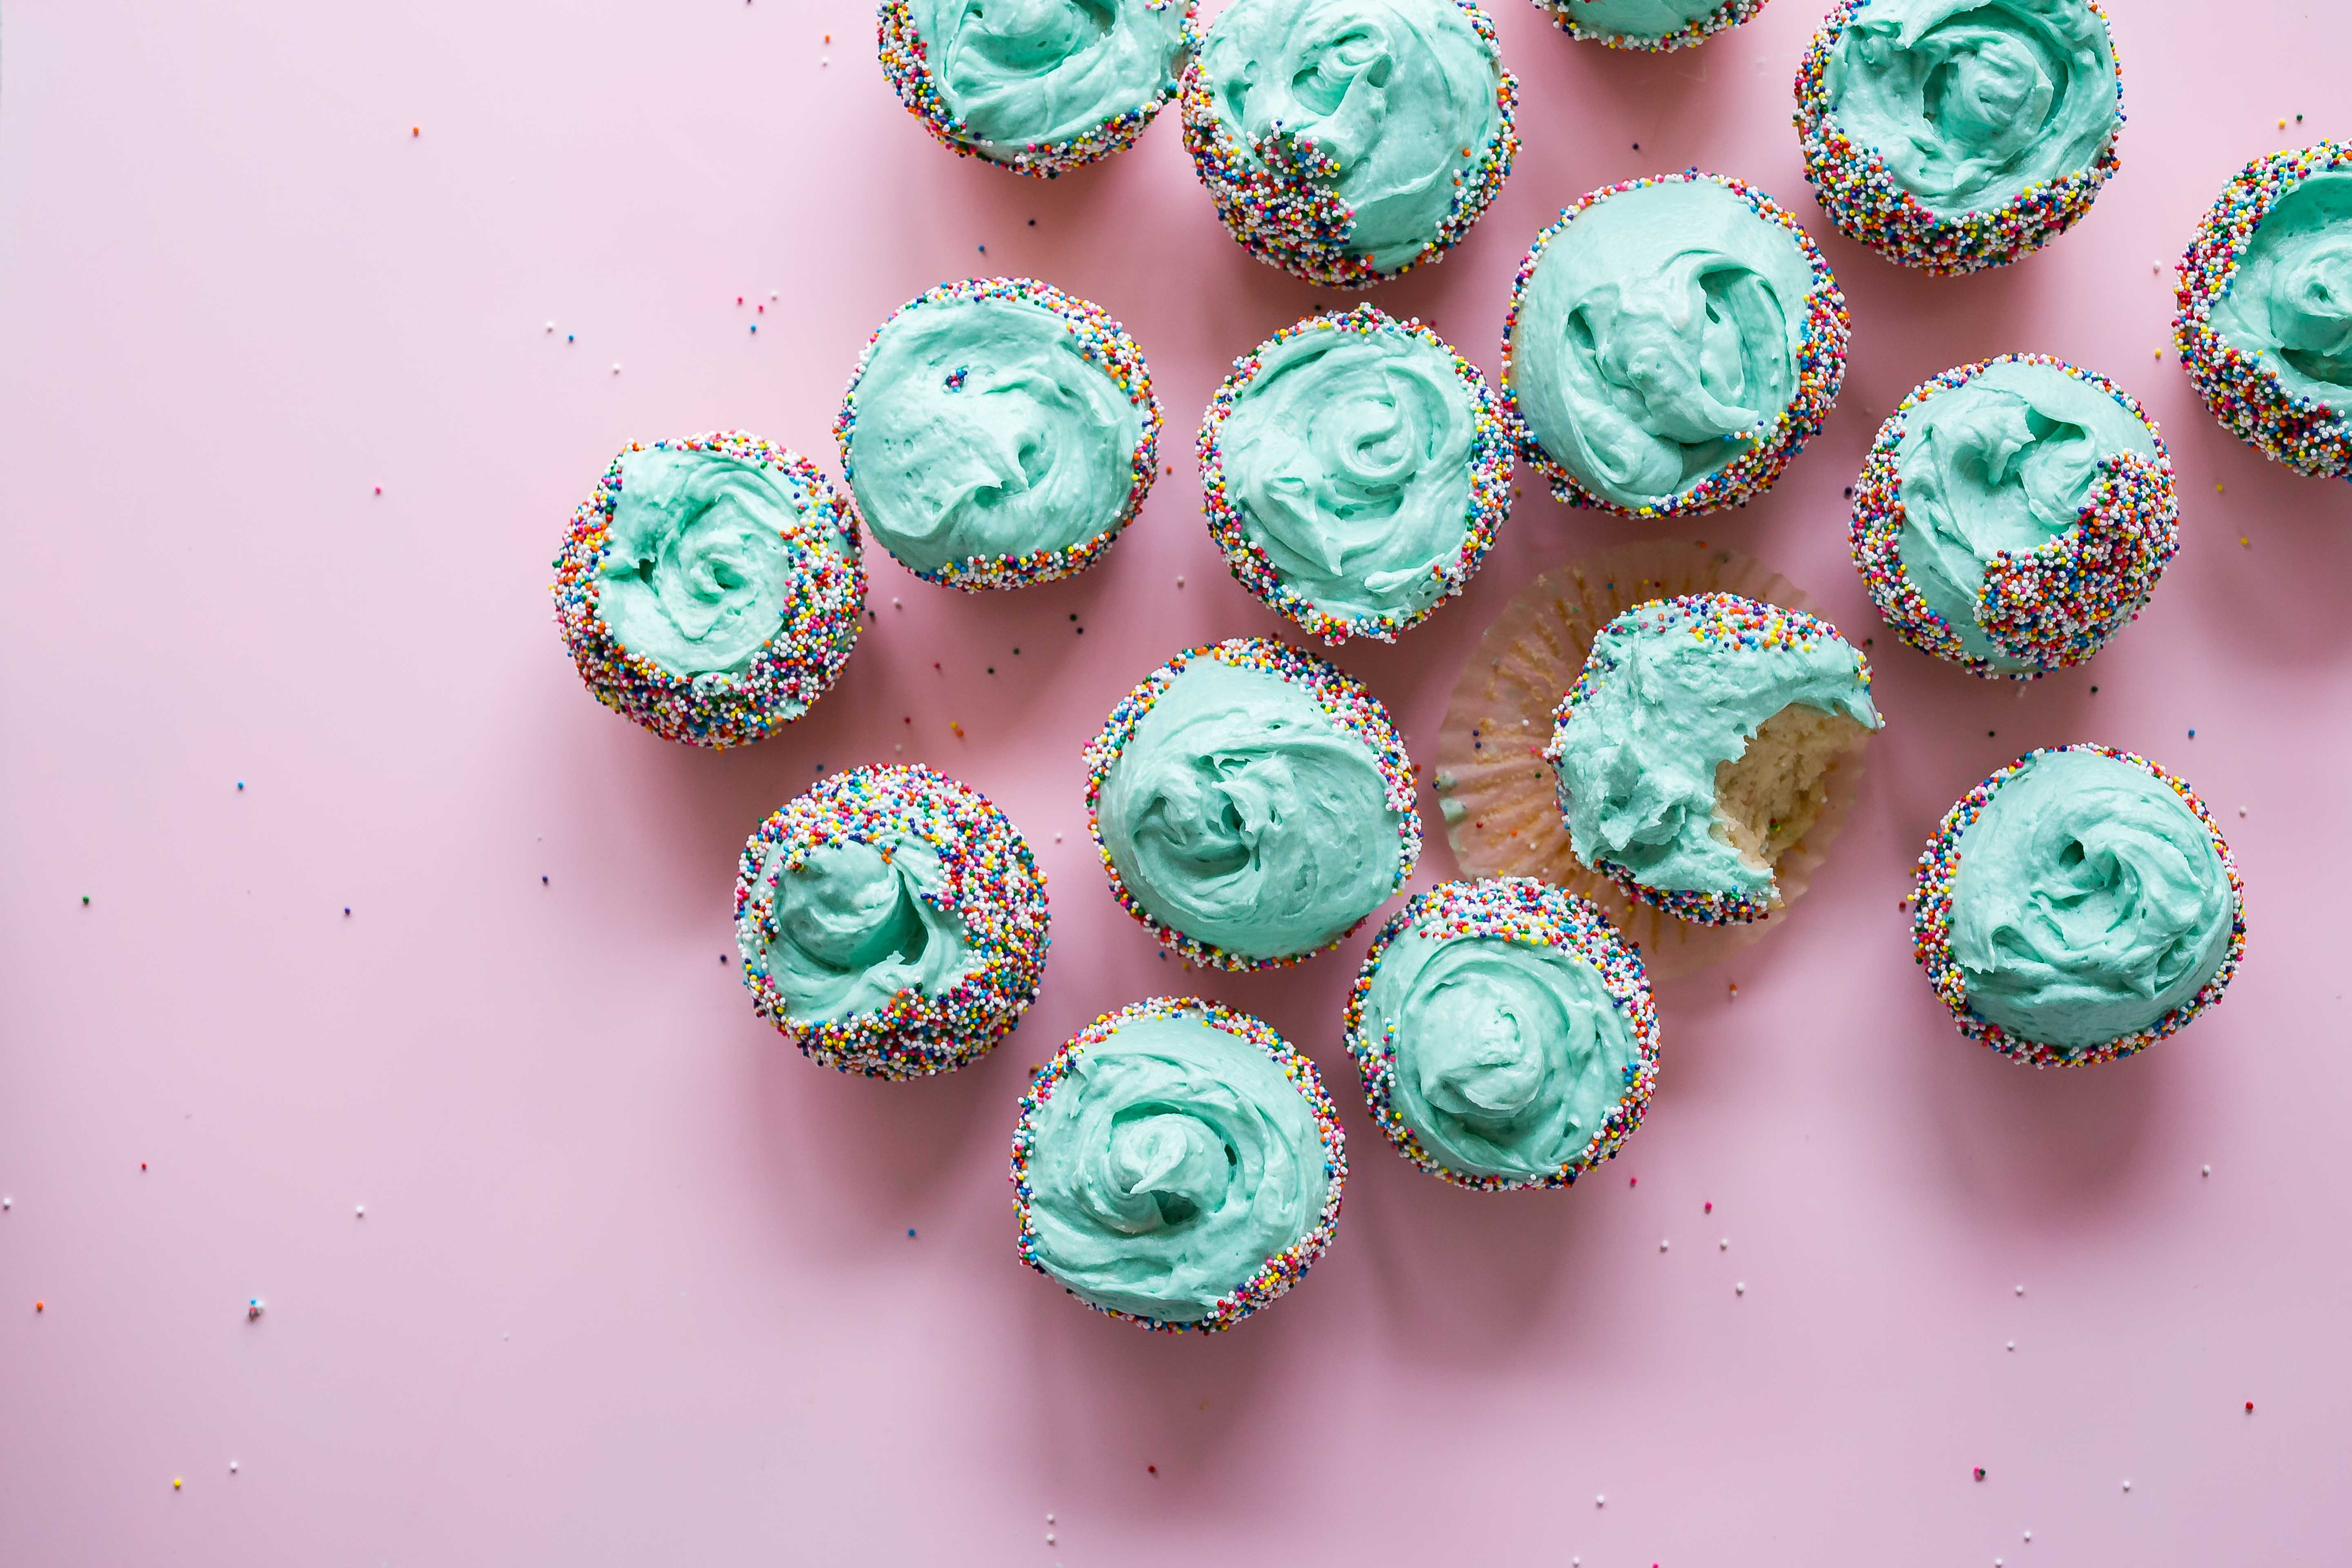 Baby Shower Party: 10 yummy recipes perfect for the occasion